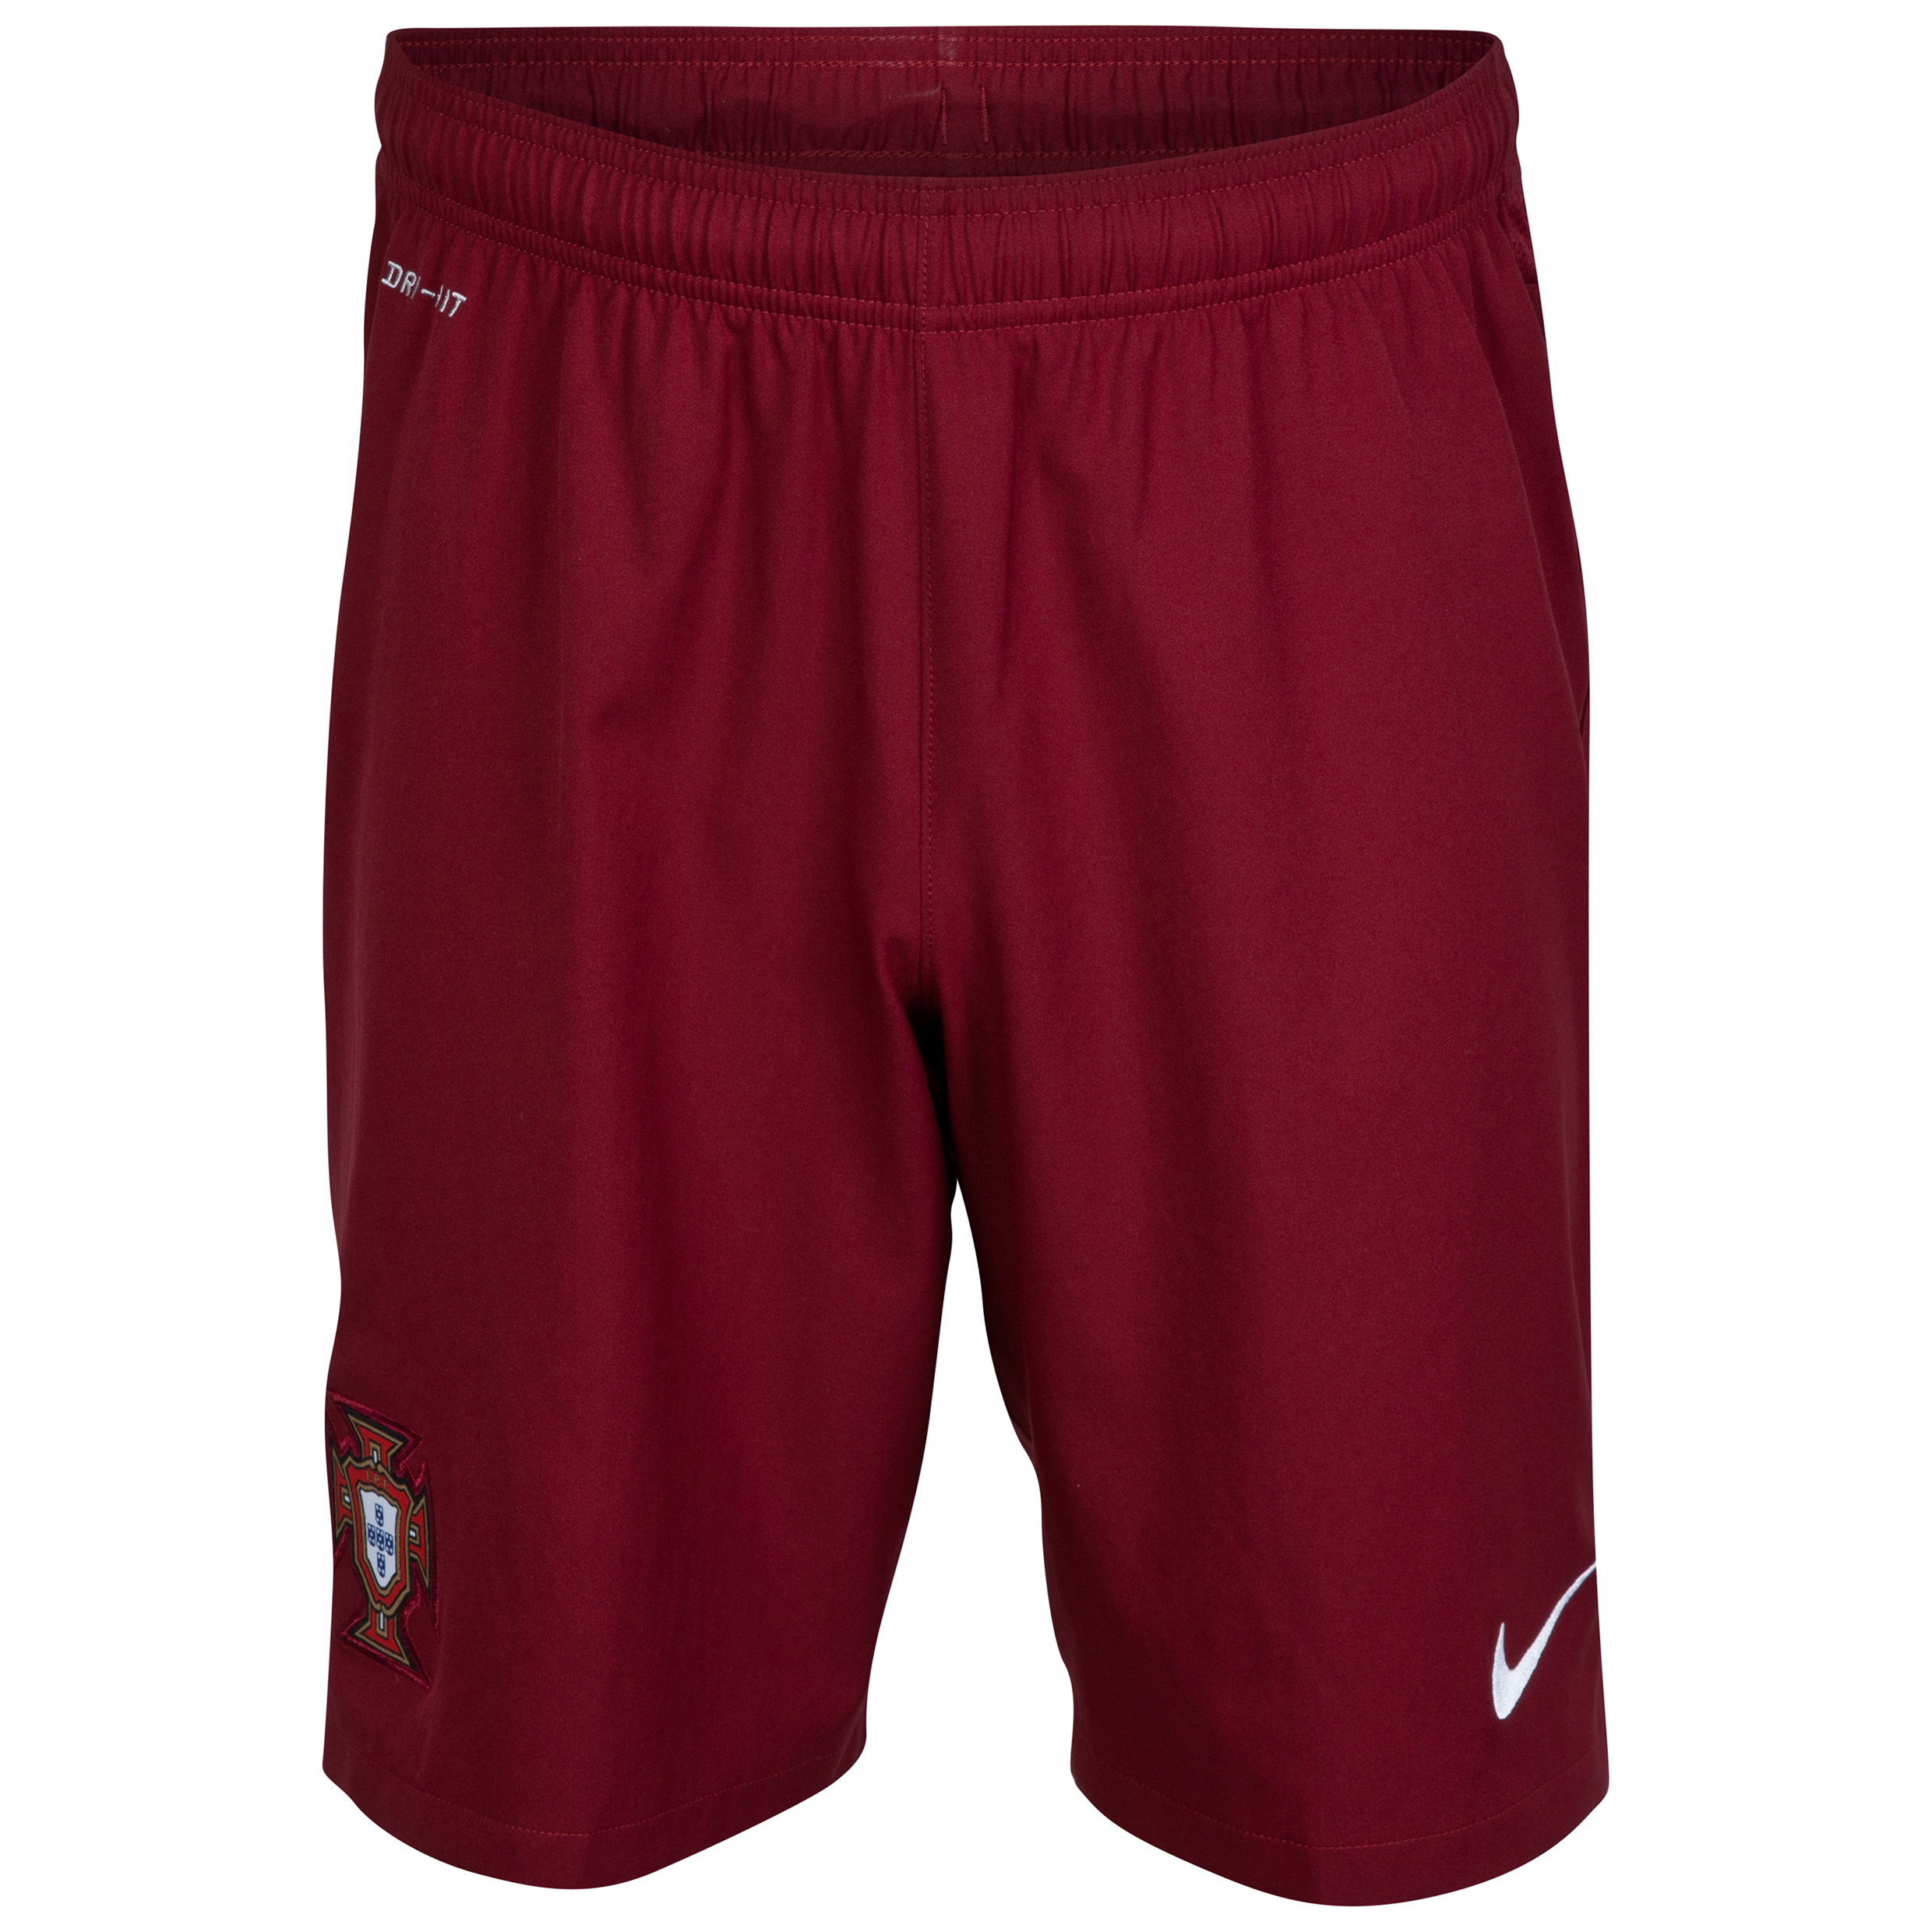 Portugal Home Shorts 2014/15 - Kids Red